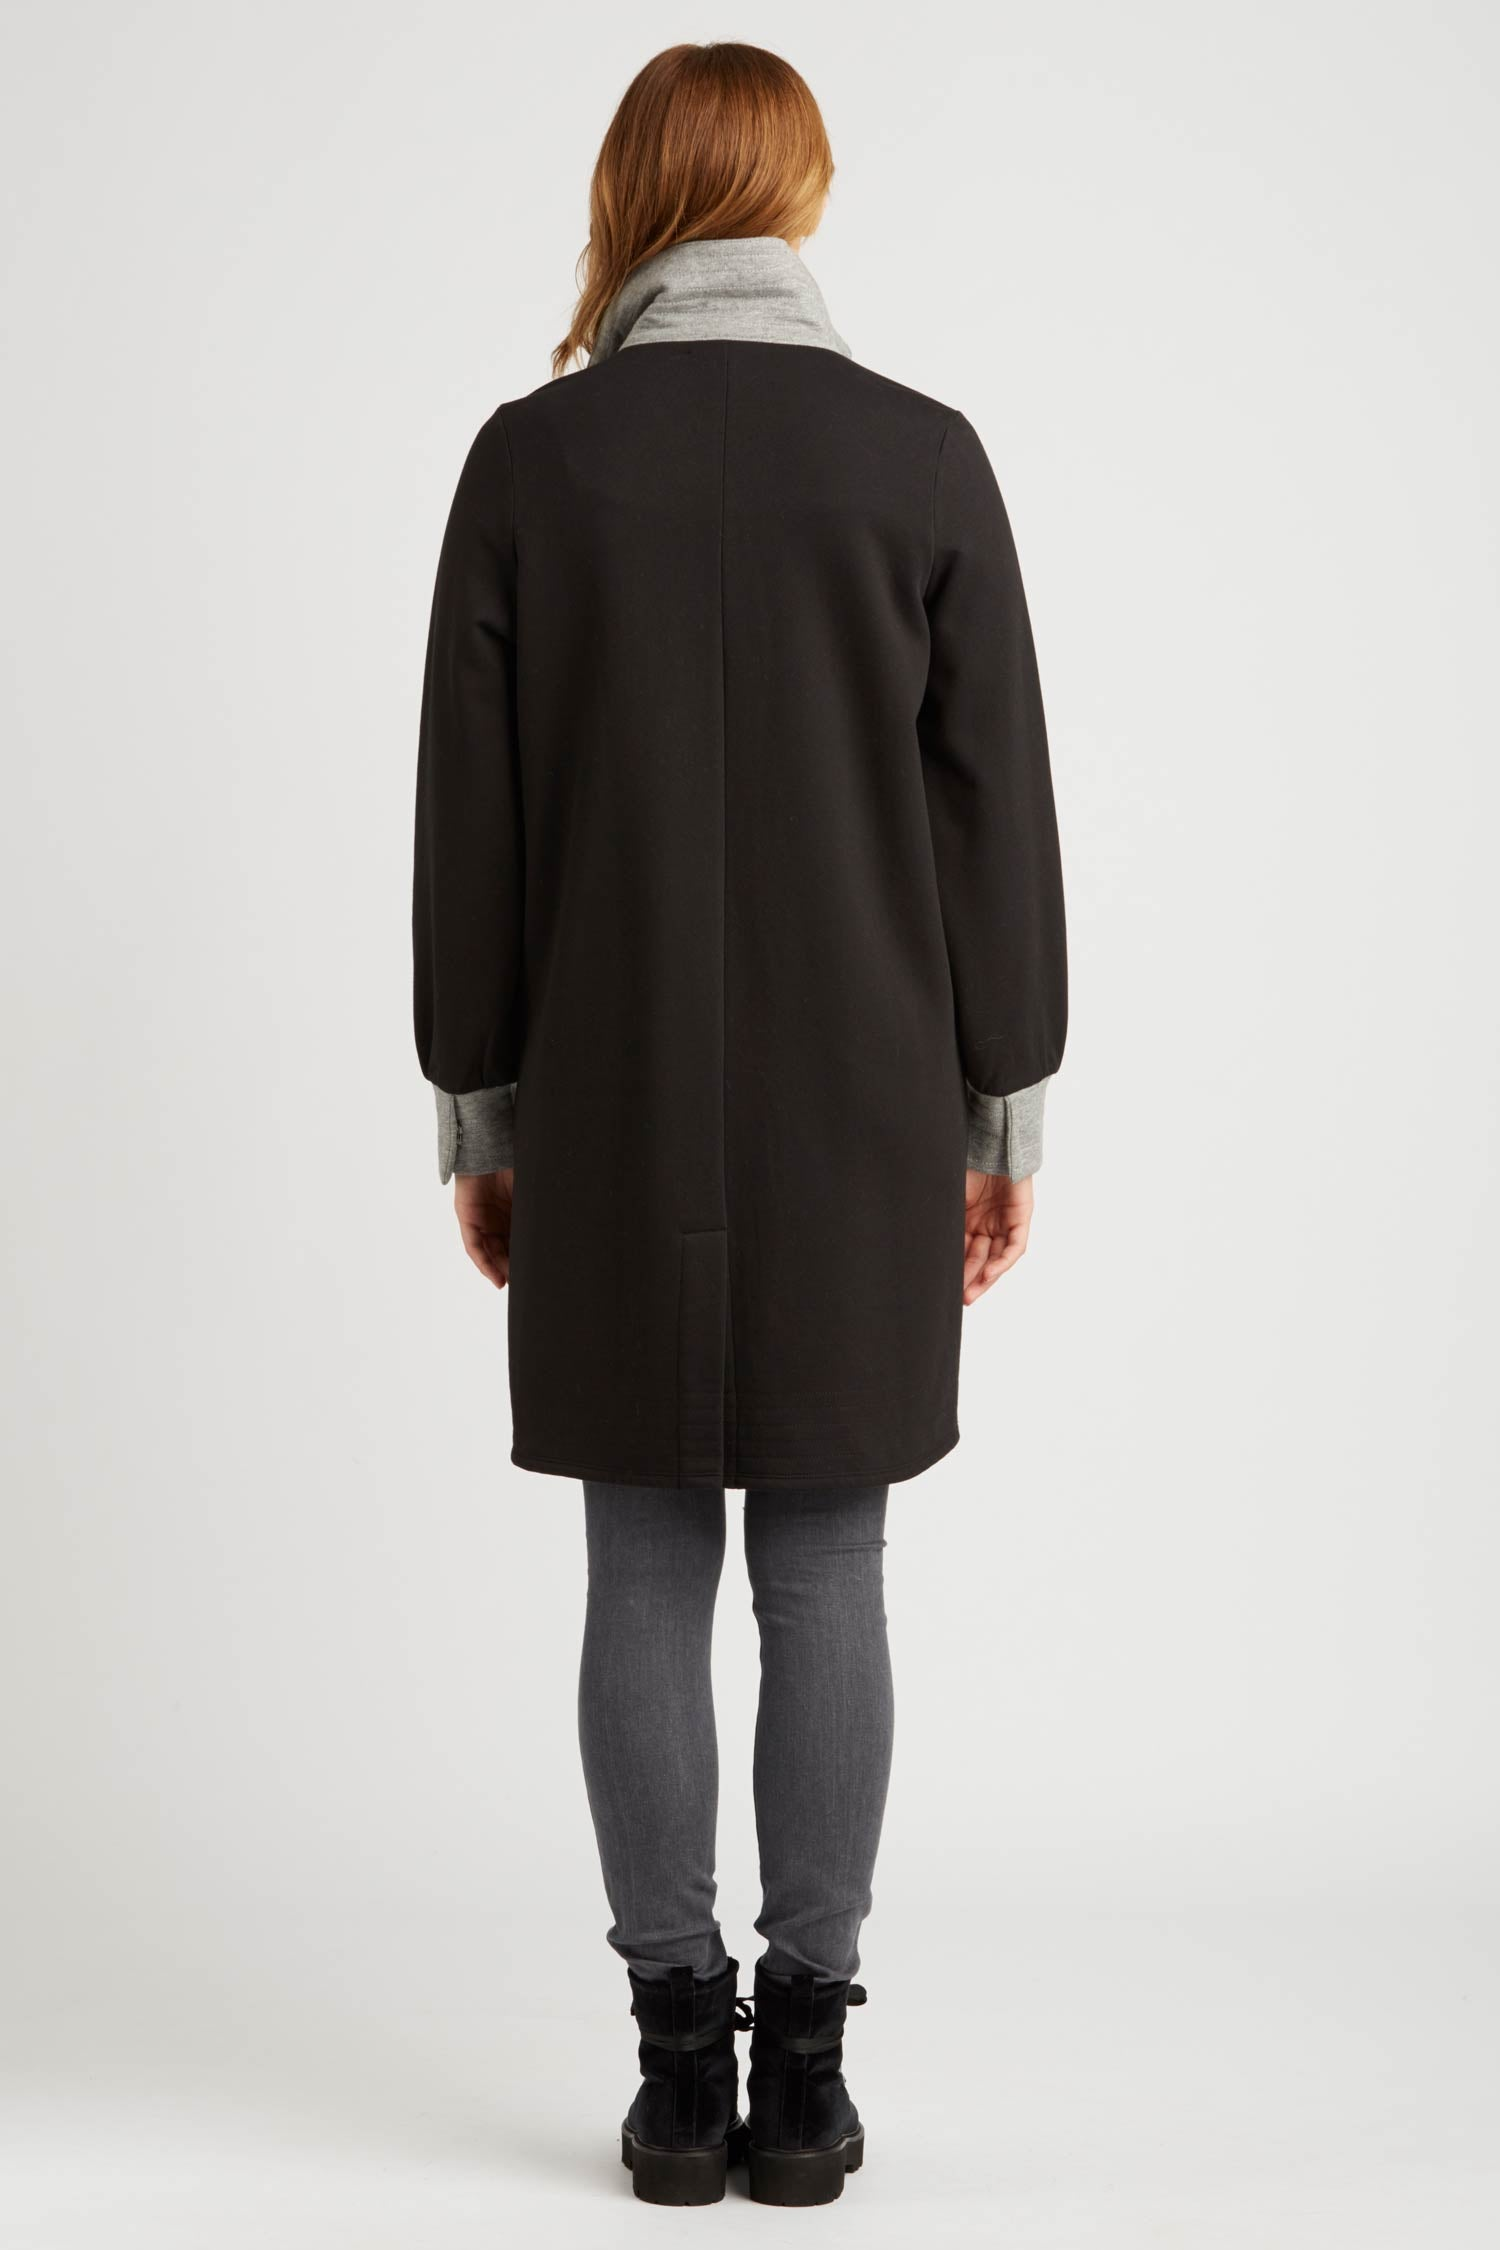 Womens Fleece Bomber Coat | Black | Sustainable Fashion